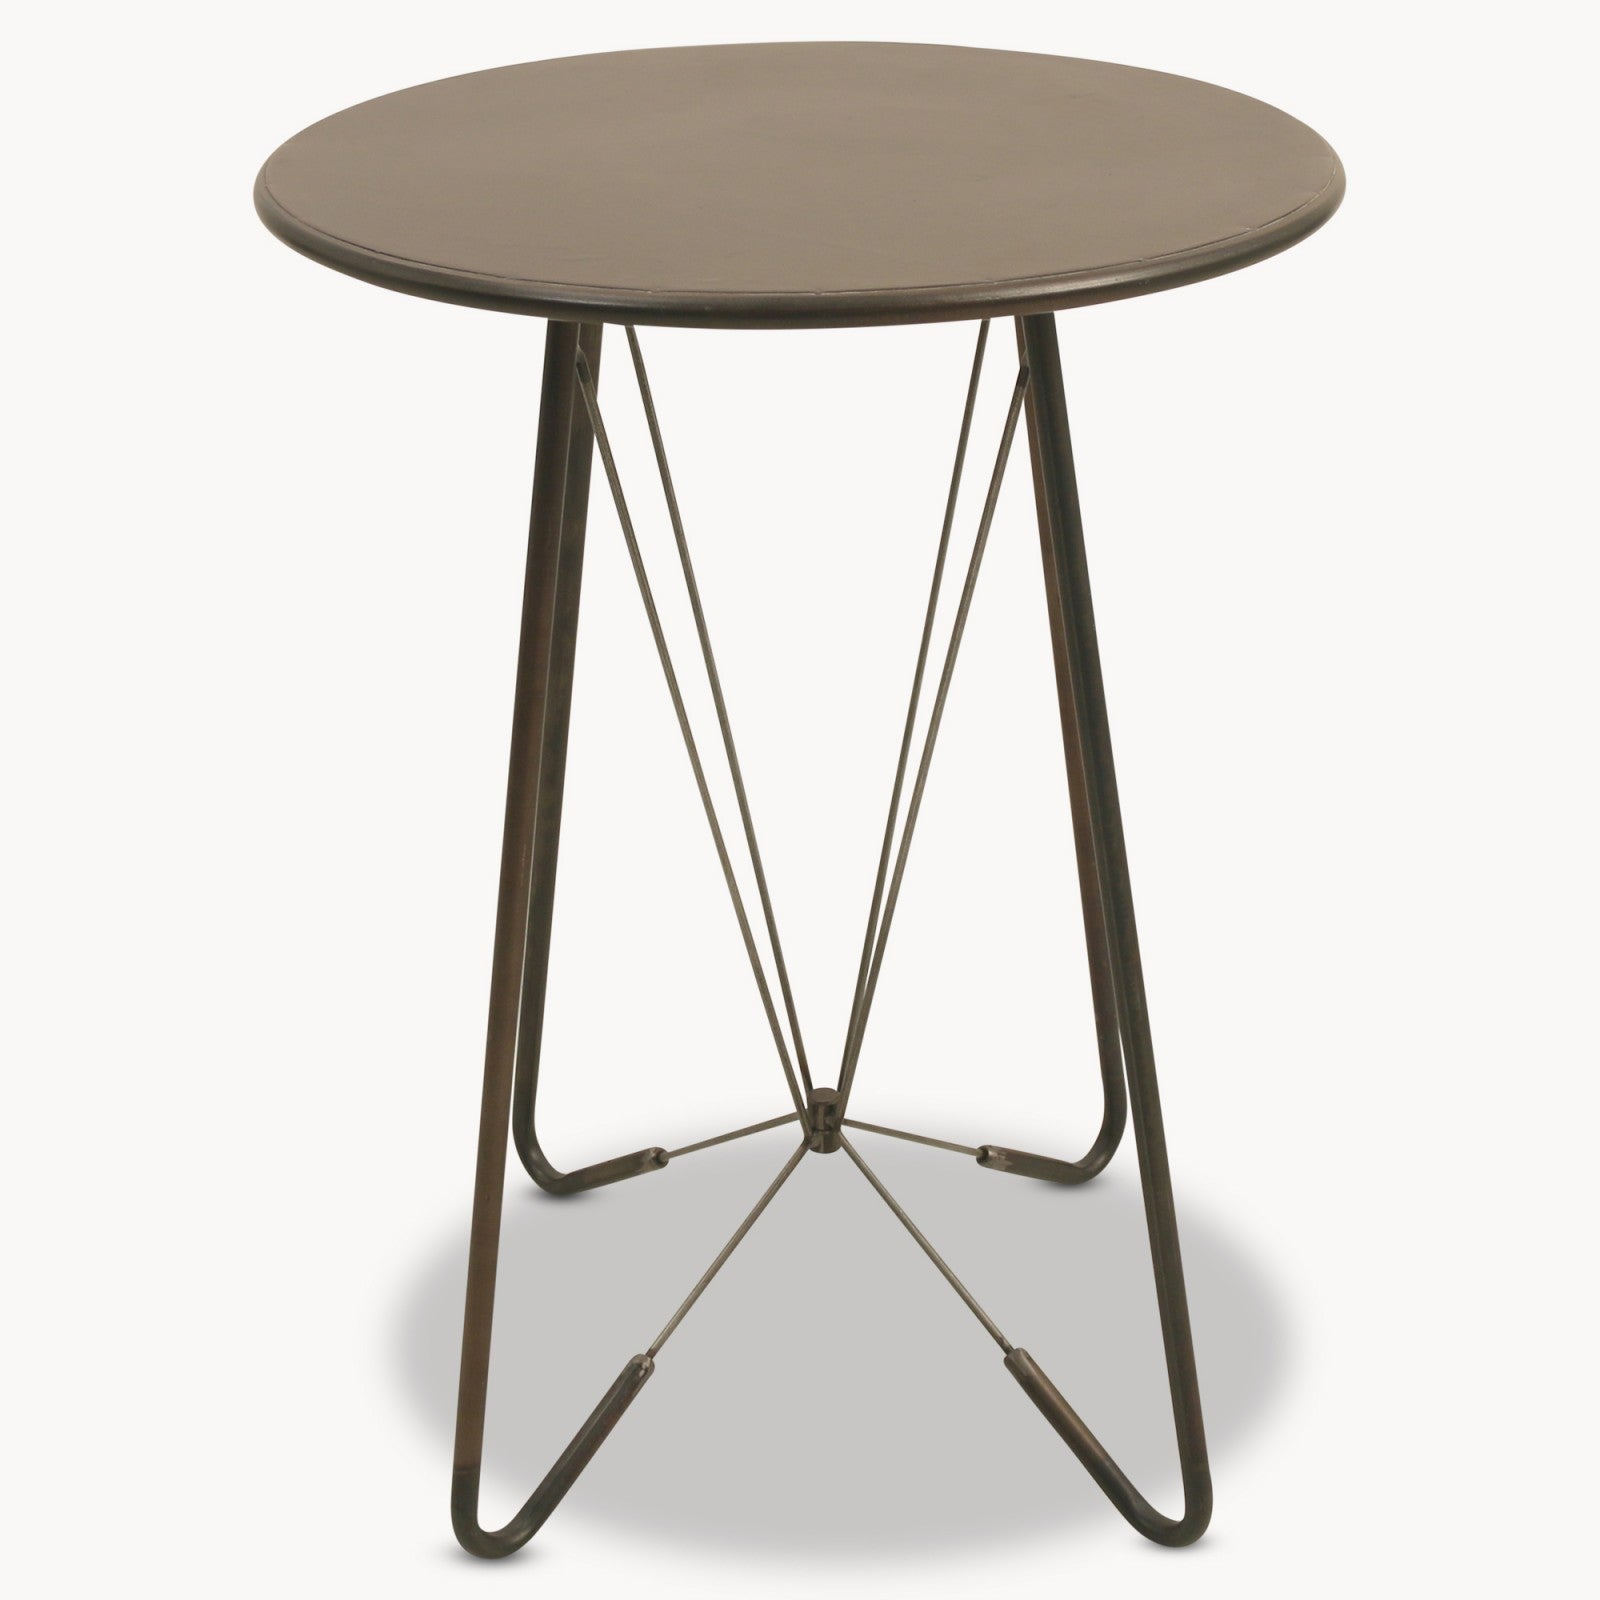 Granville Round Metal Side Table Decor Interiors House Home